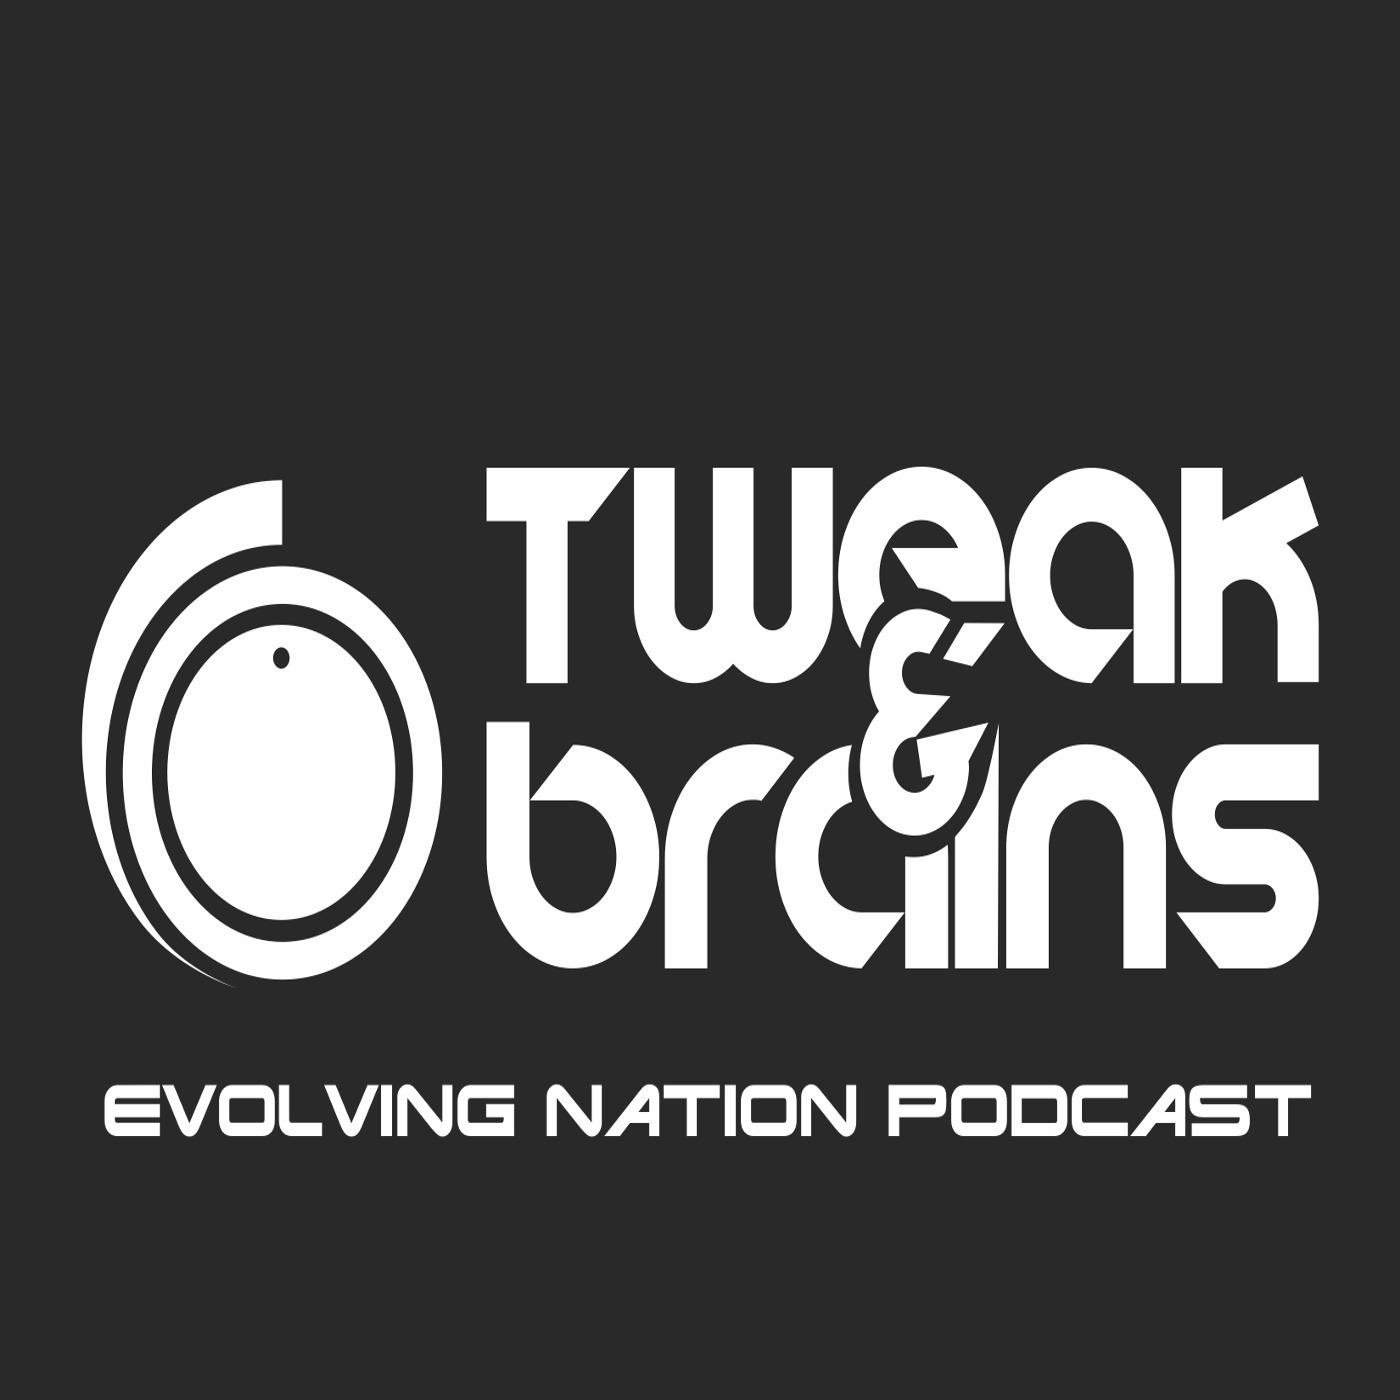 TWEAK&BRAINS - Evolving Nation Podcast